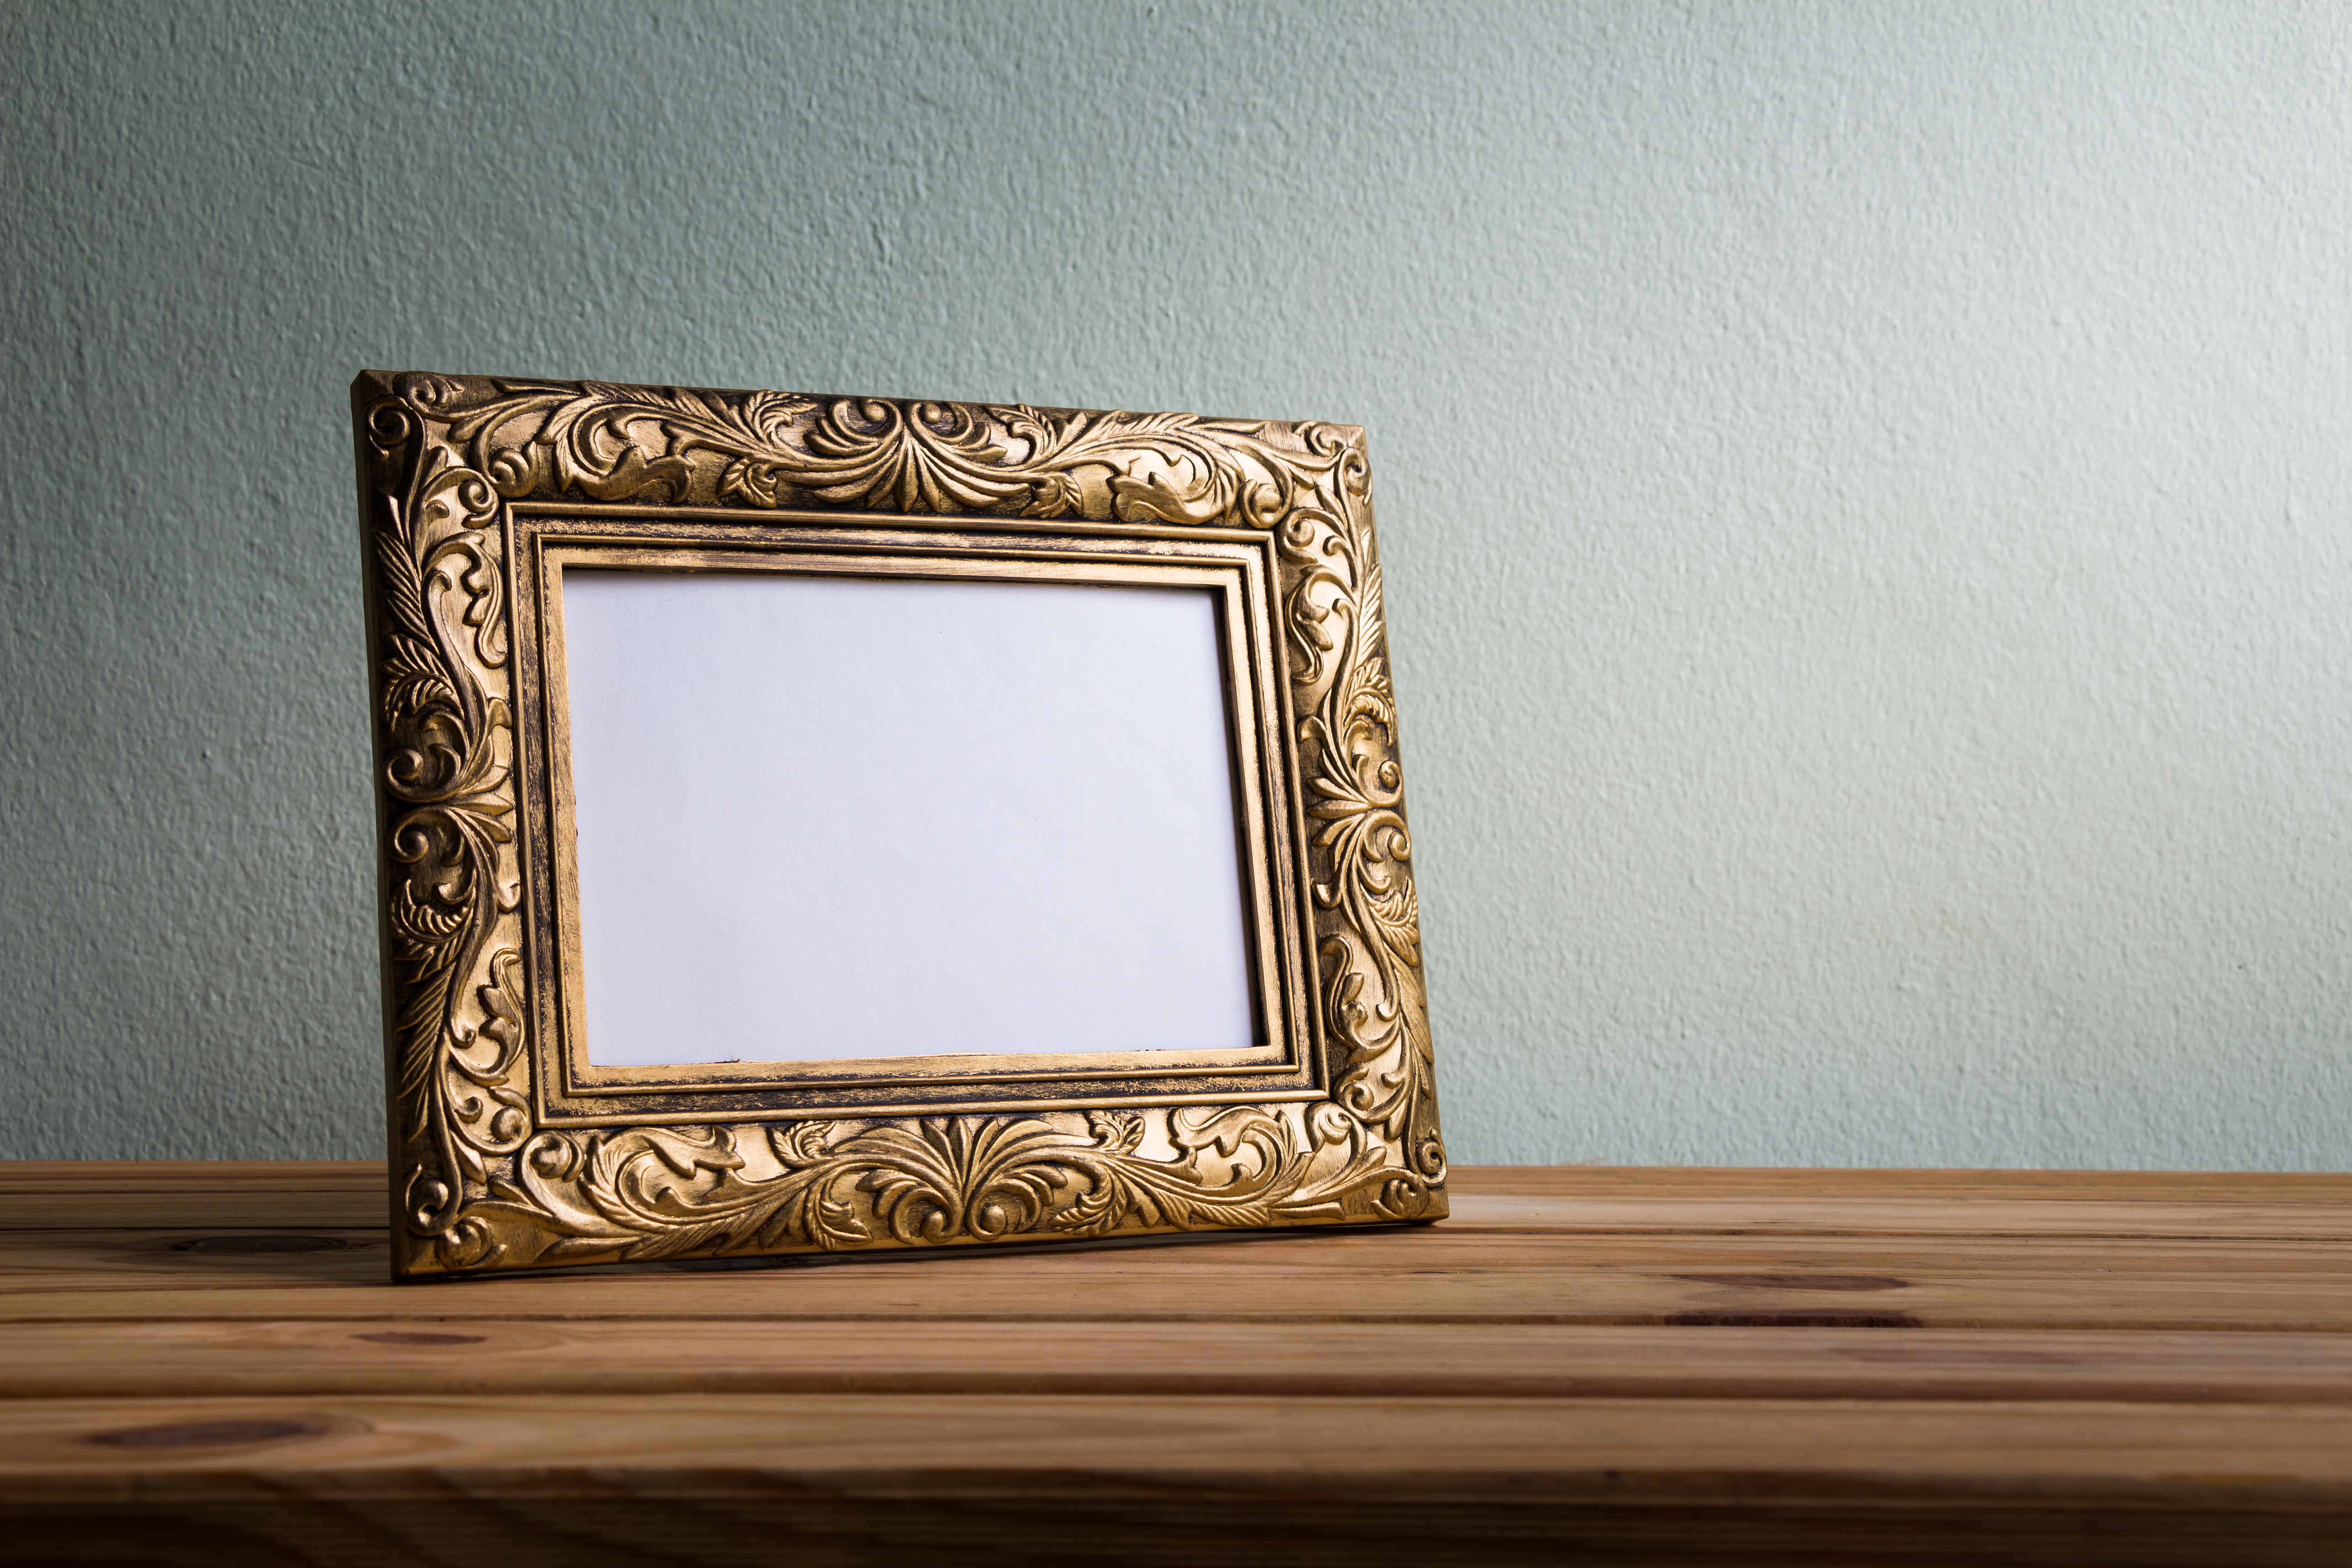 A product photo of a picture frame placed on a counter top